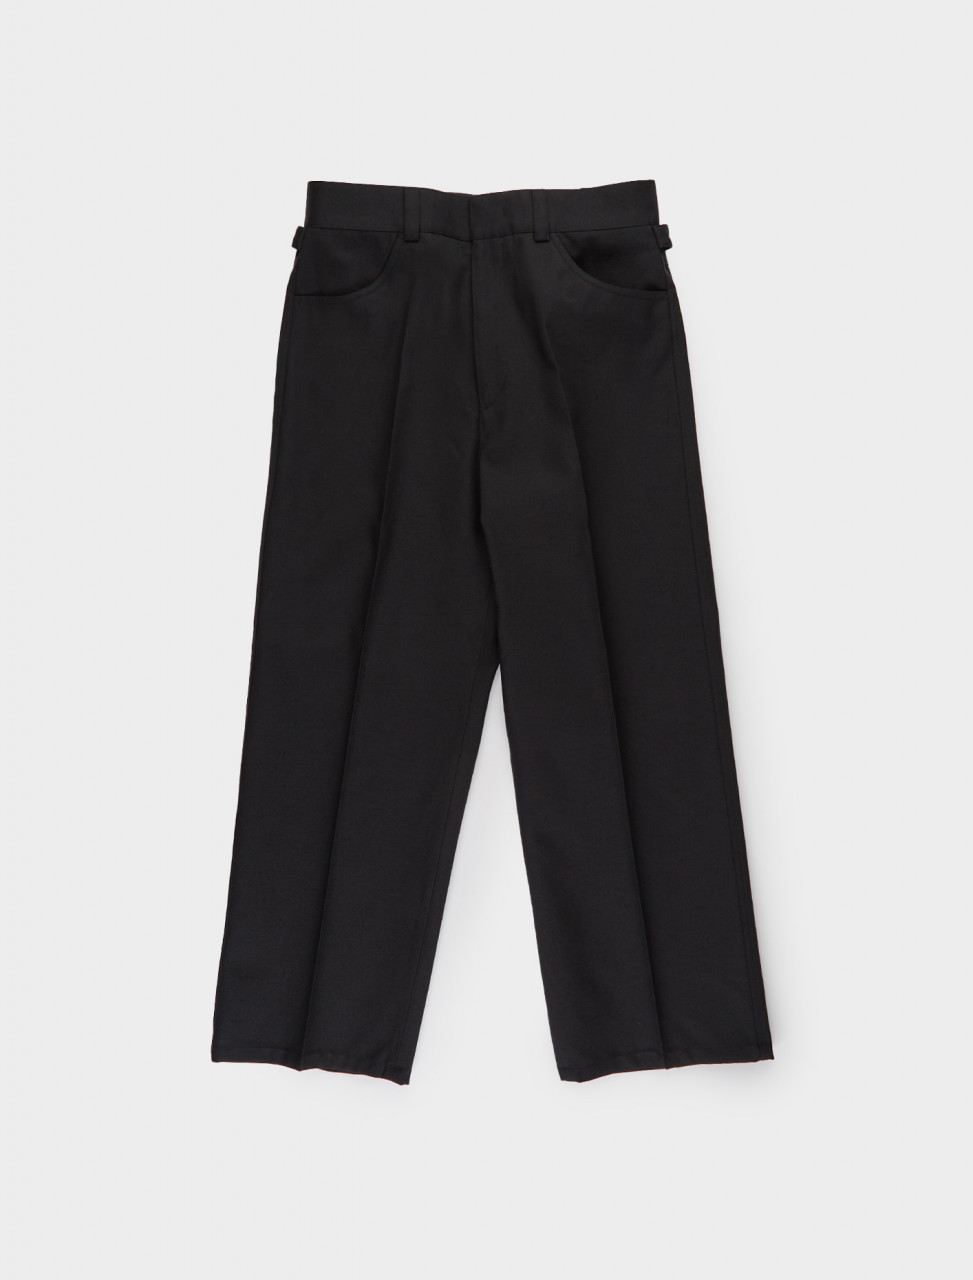 130-JSPR301625-WR201000-001 JIL SANDER High Waisted Wide Leg Trouser in Black